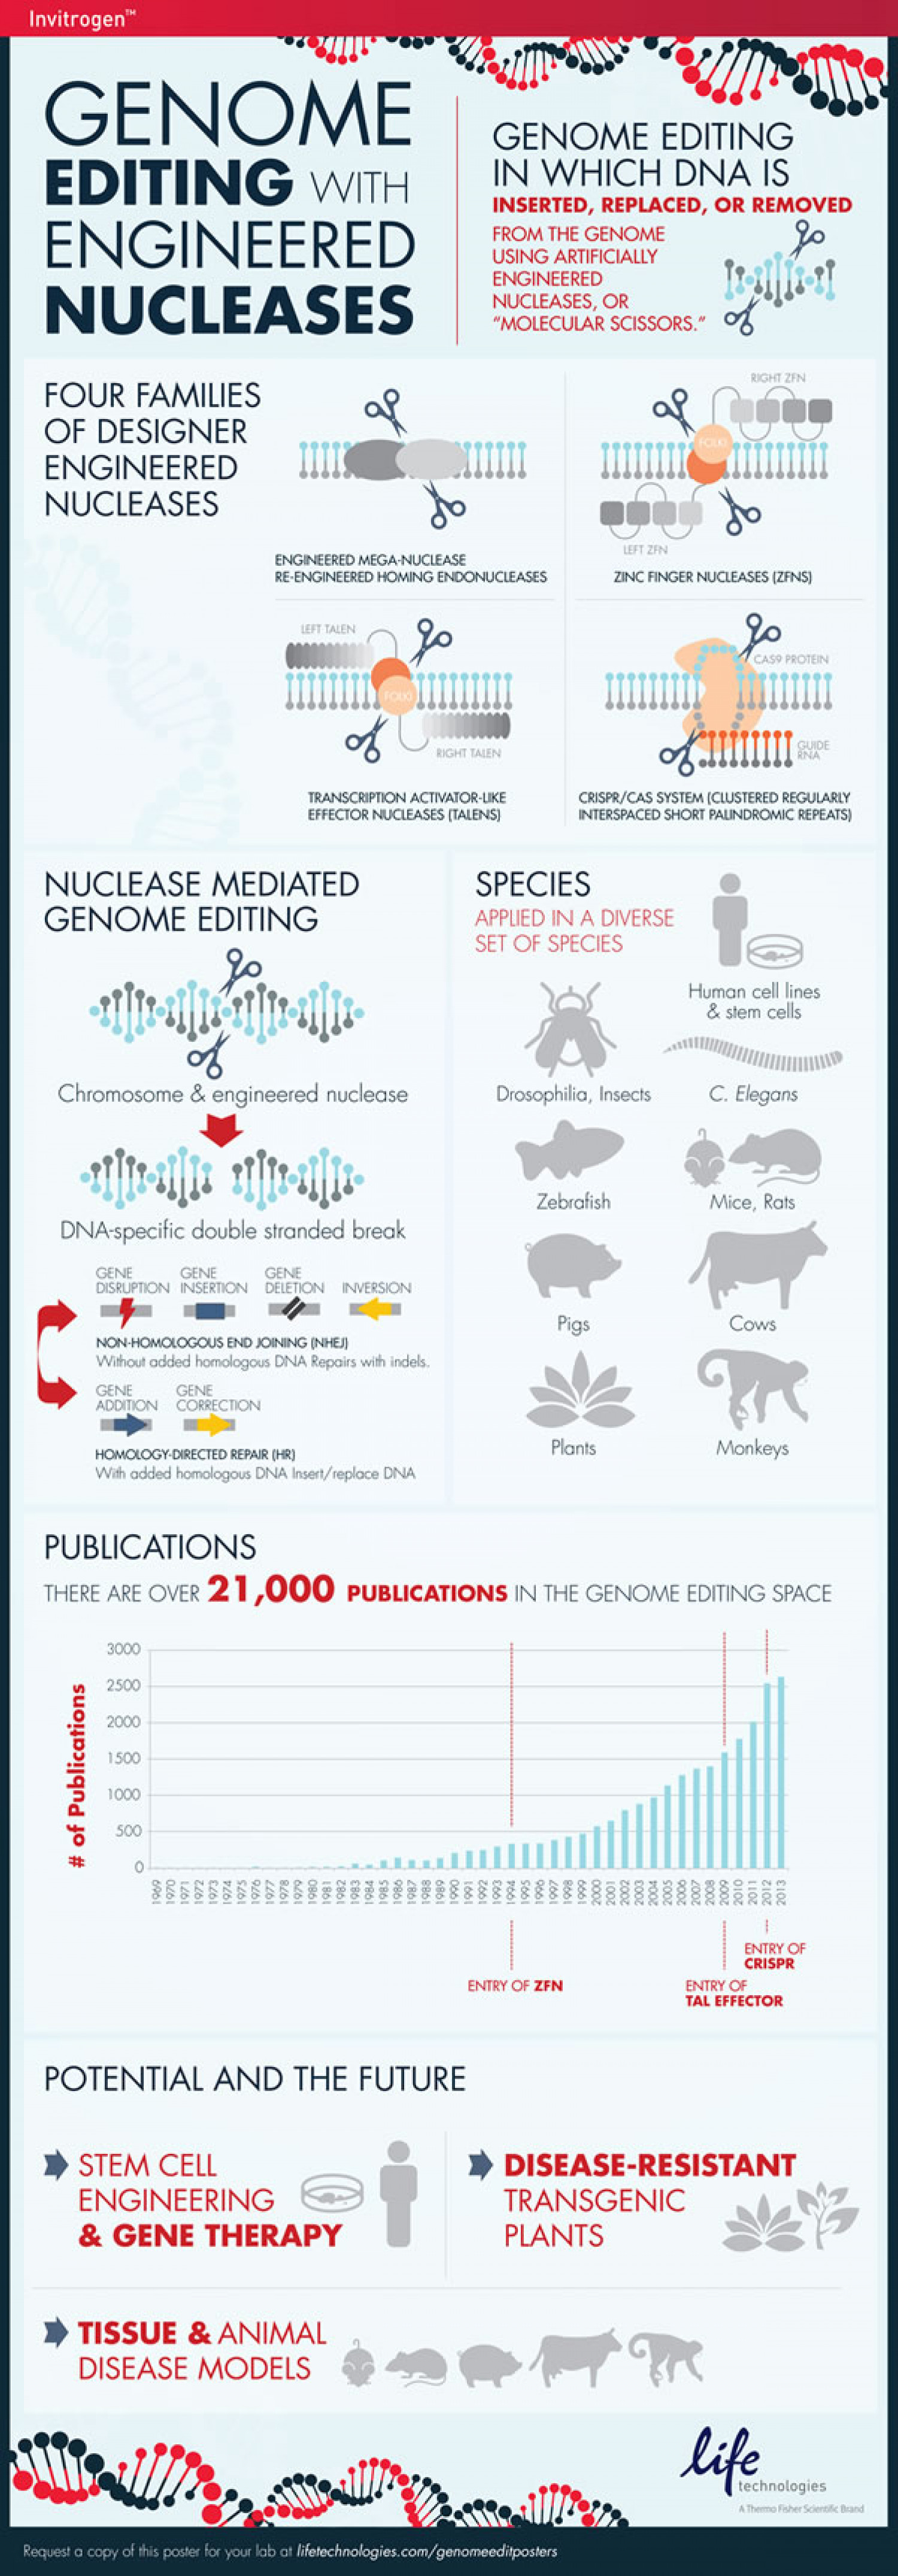 Genome Editing With Engineered Nucleases Infographic